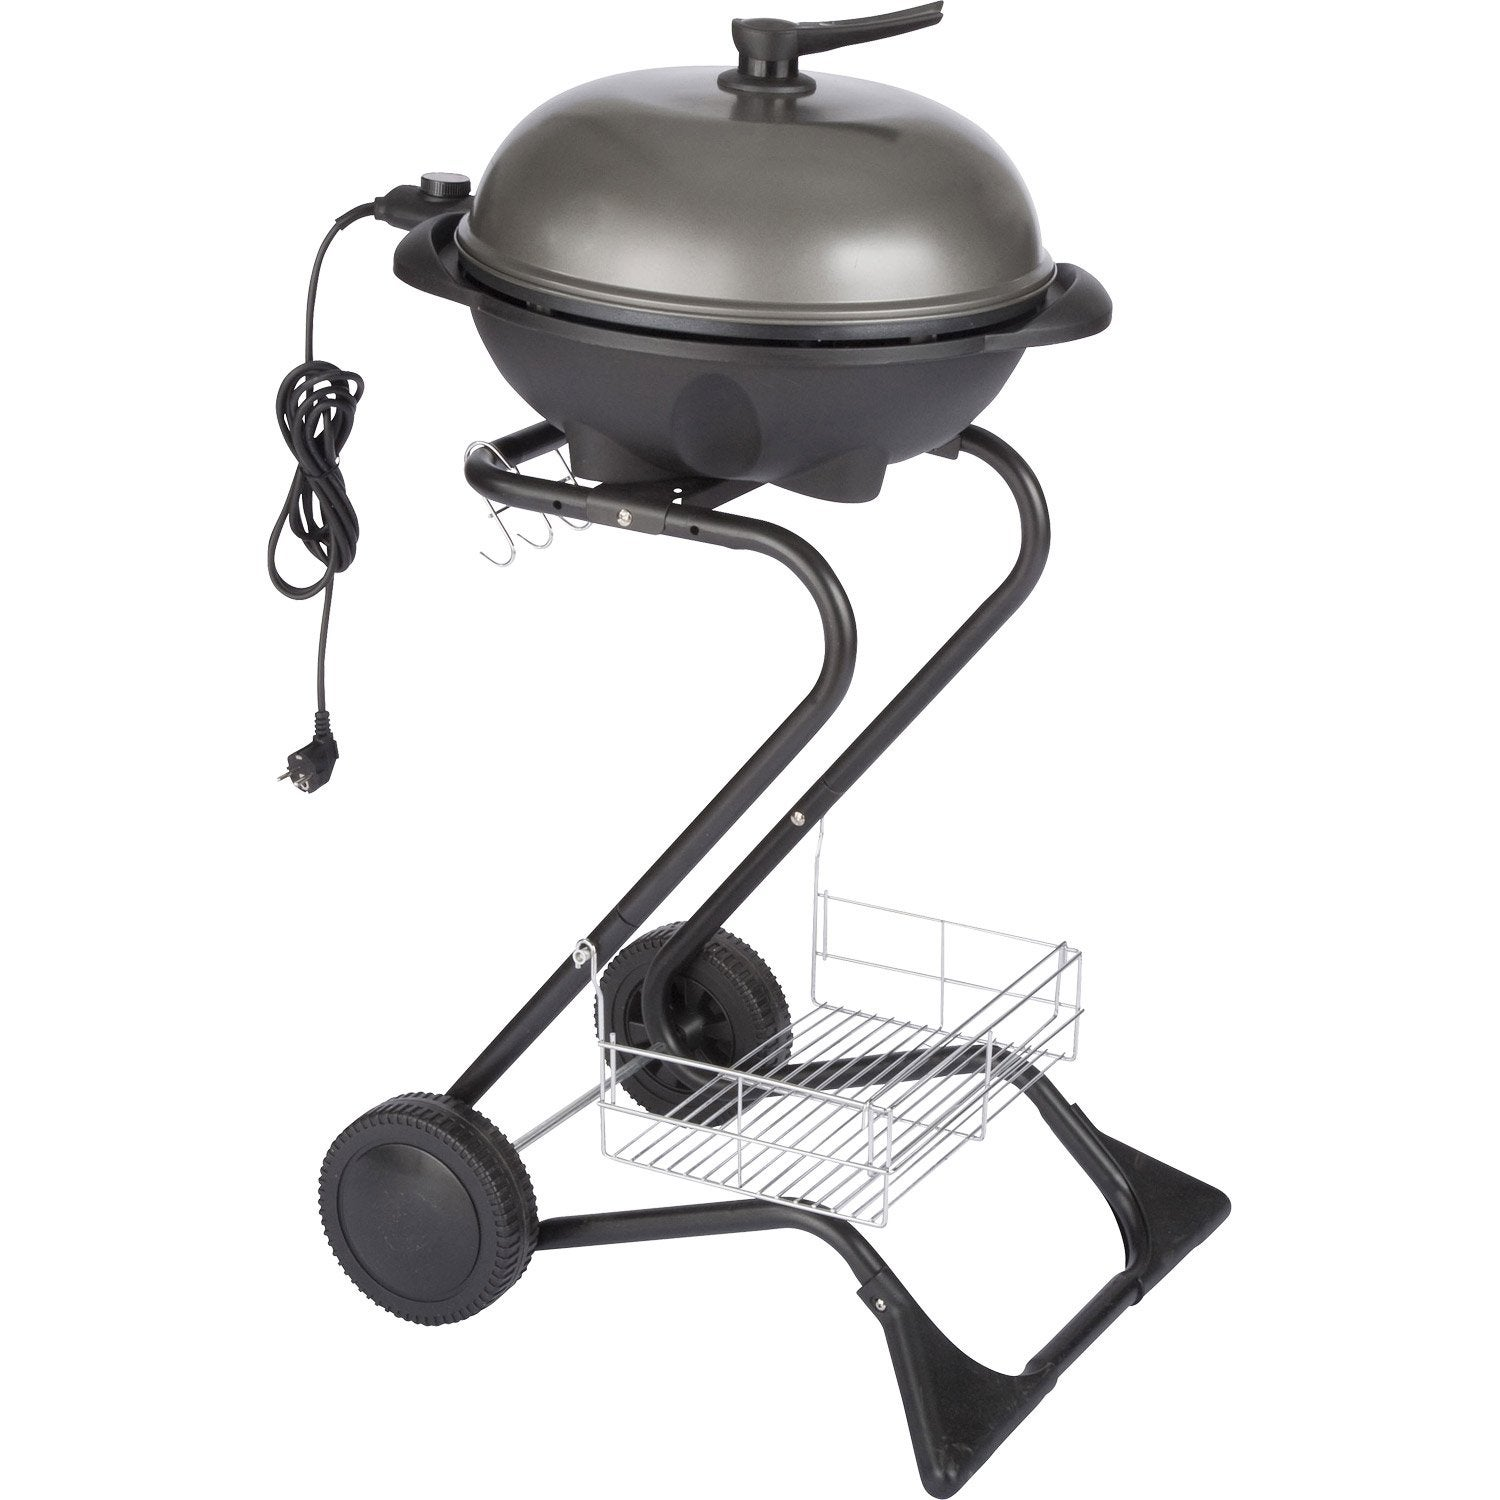 Barbecue lectrique paname gris leroy merlin - Barbecue electrique leroy merlin ...